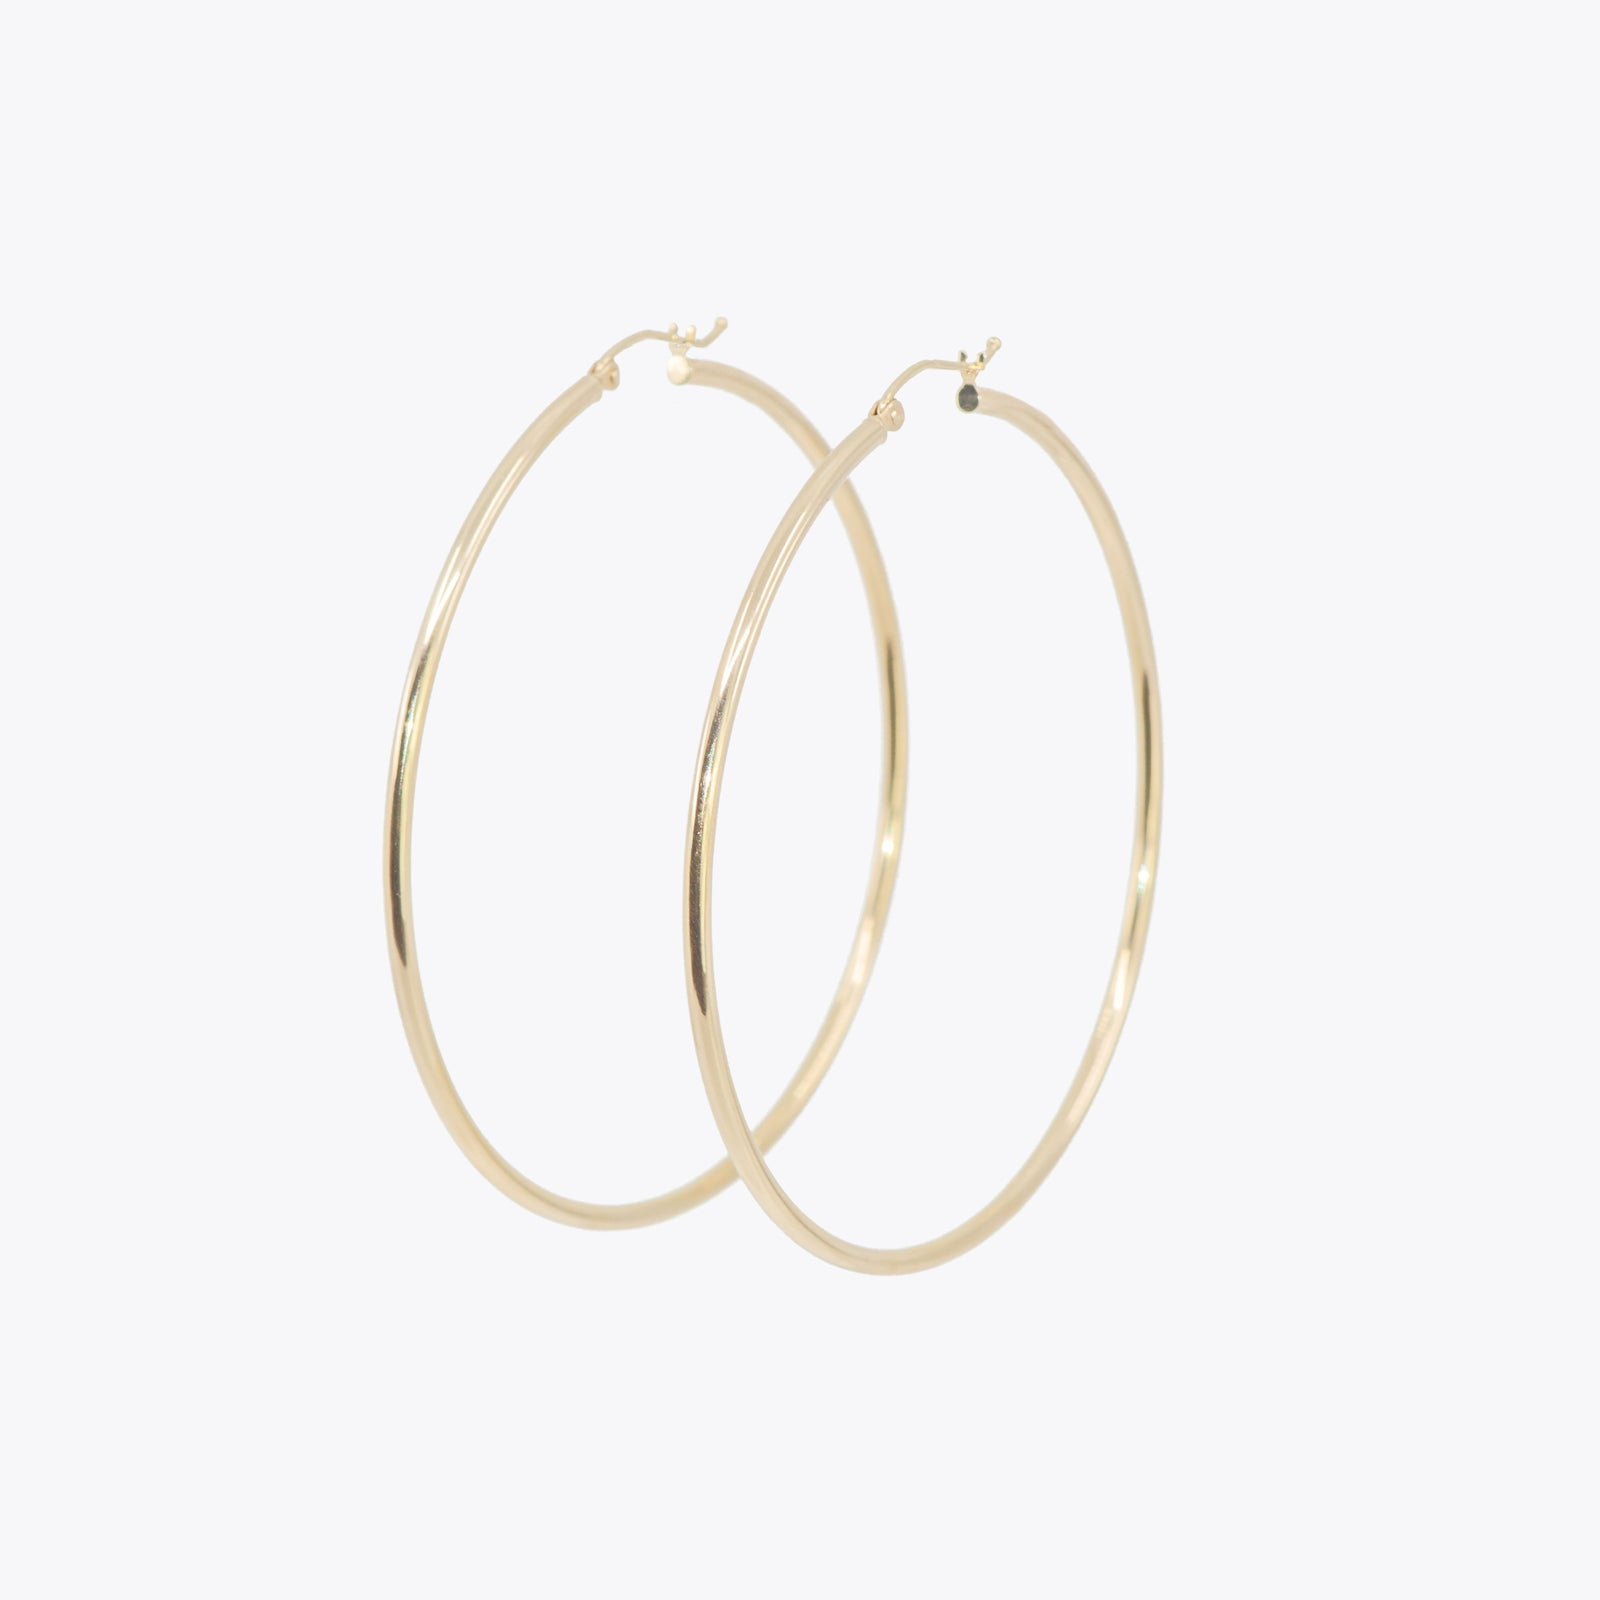 GG Curve Hoops